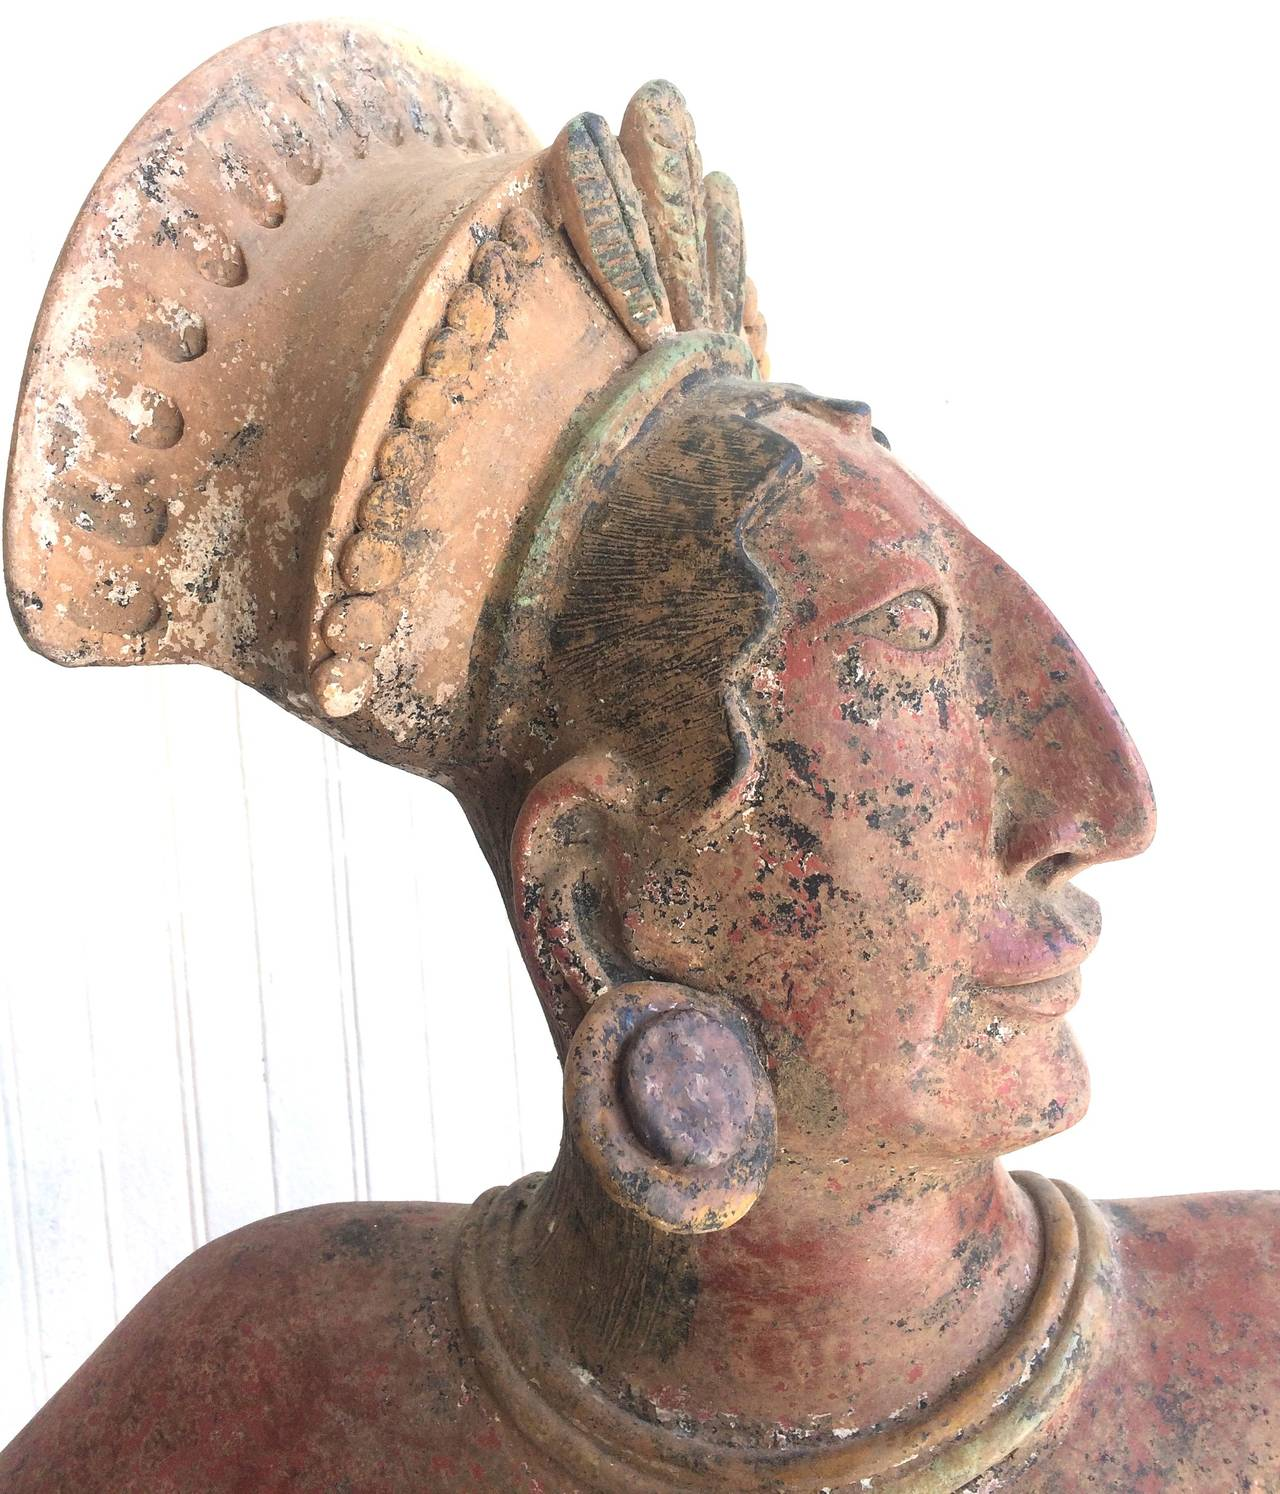 Large Mayan Clay Sculpture - Brown Figurative Sculpture by Walter Bastianetto